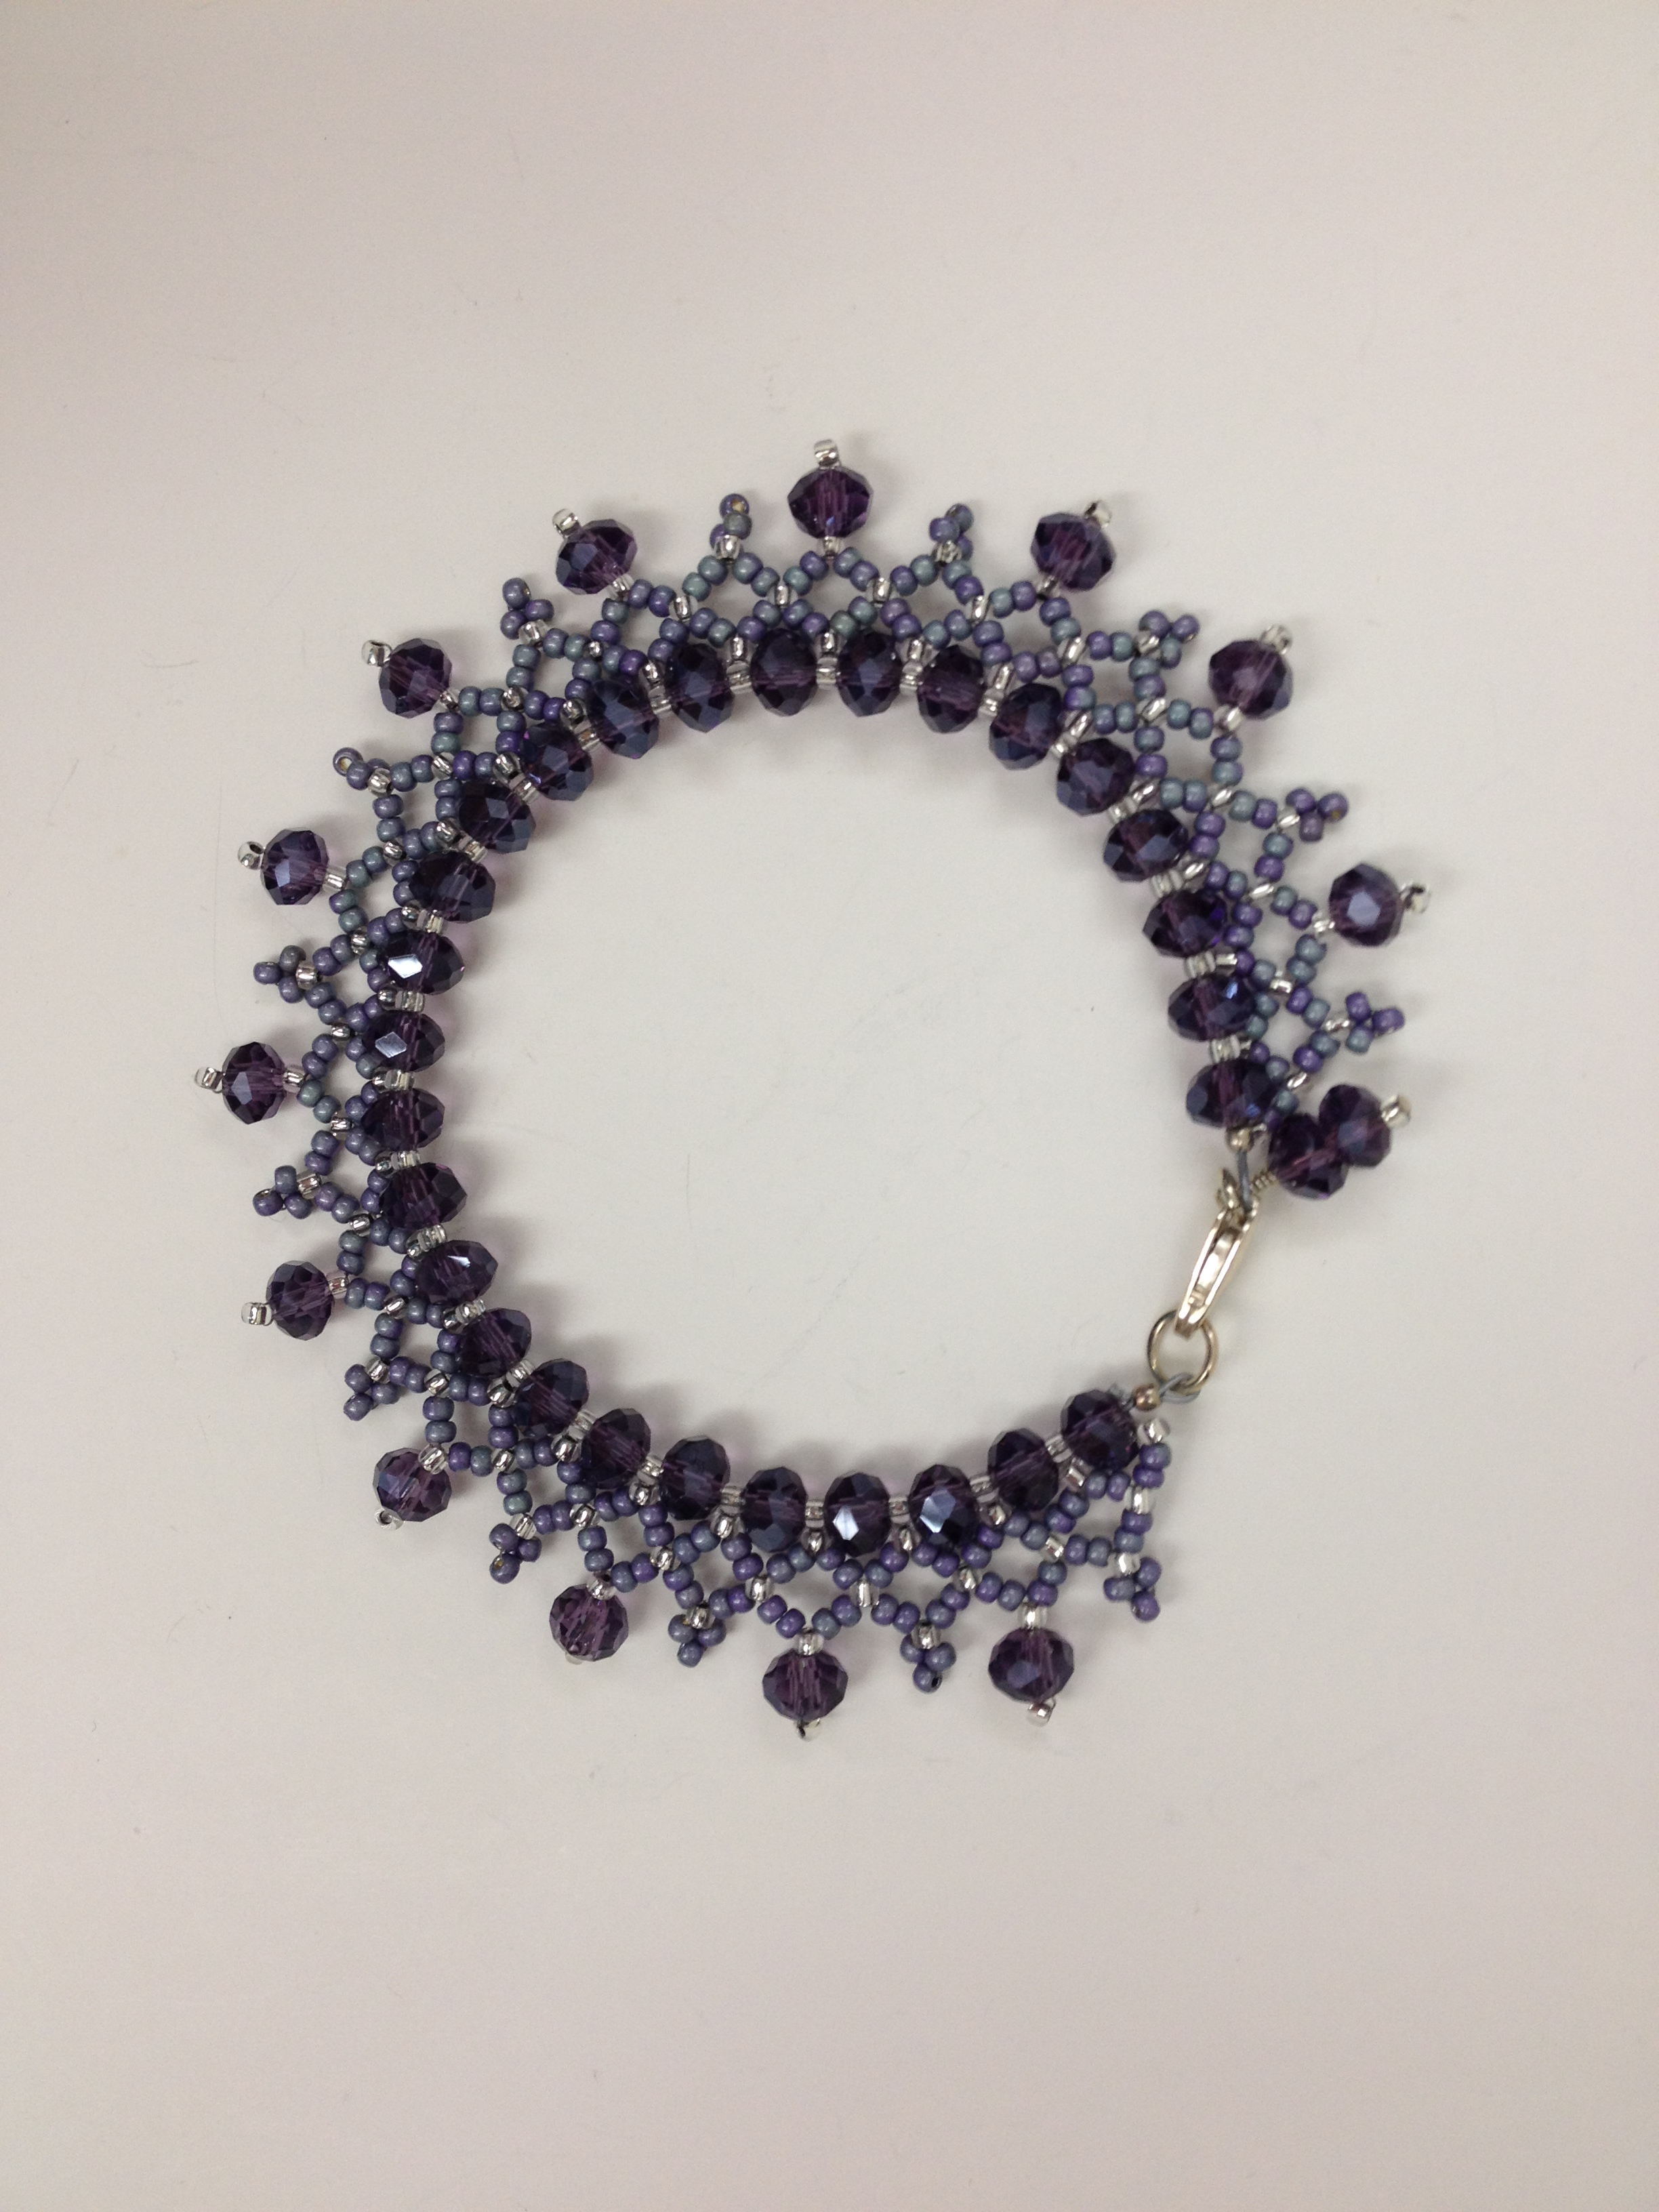 Crystal Lace Braclet in purple by Paula Binner